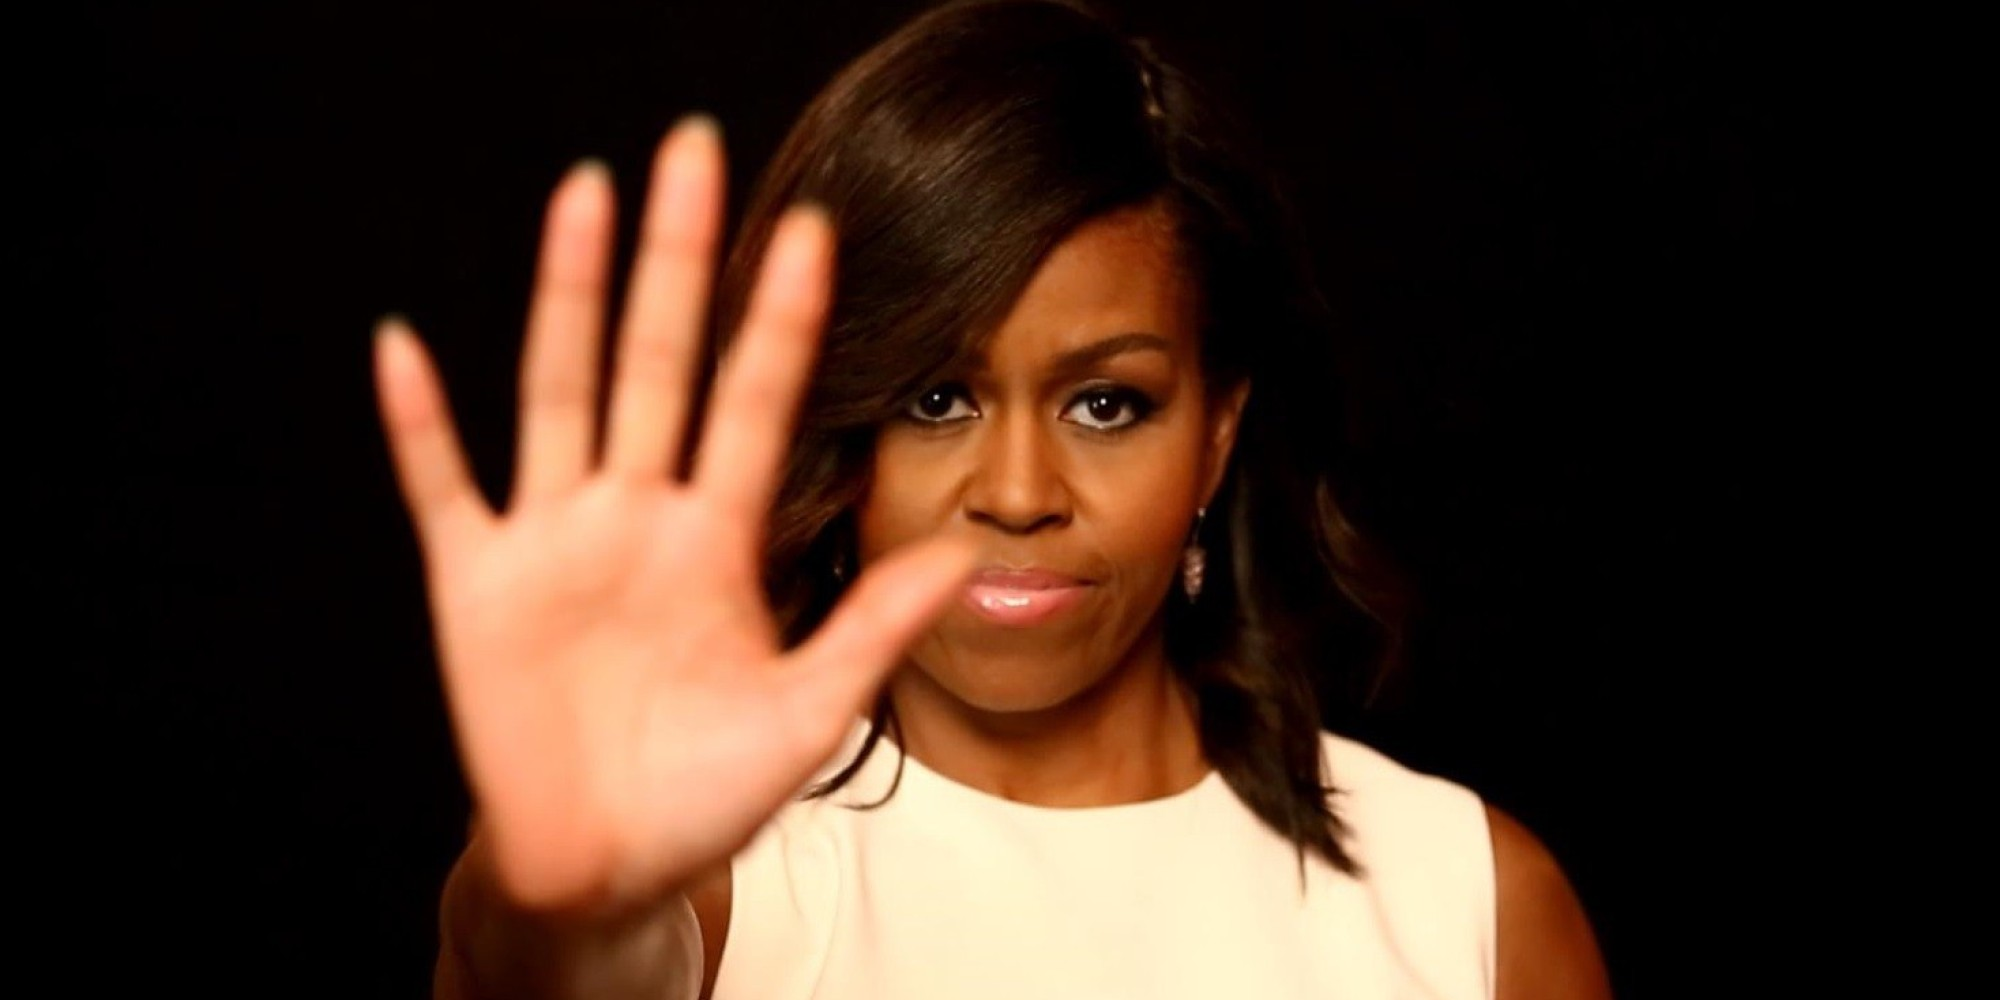 Michelle Obama Wallpapers Celebrity Hq Michelle Obama Pictures 4k Wallpapers 2019